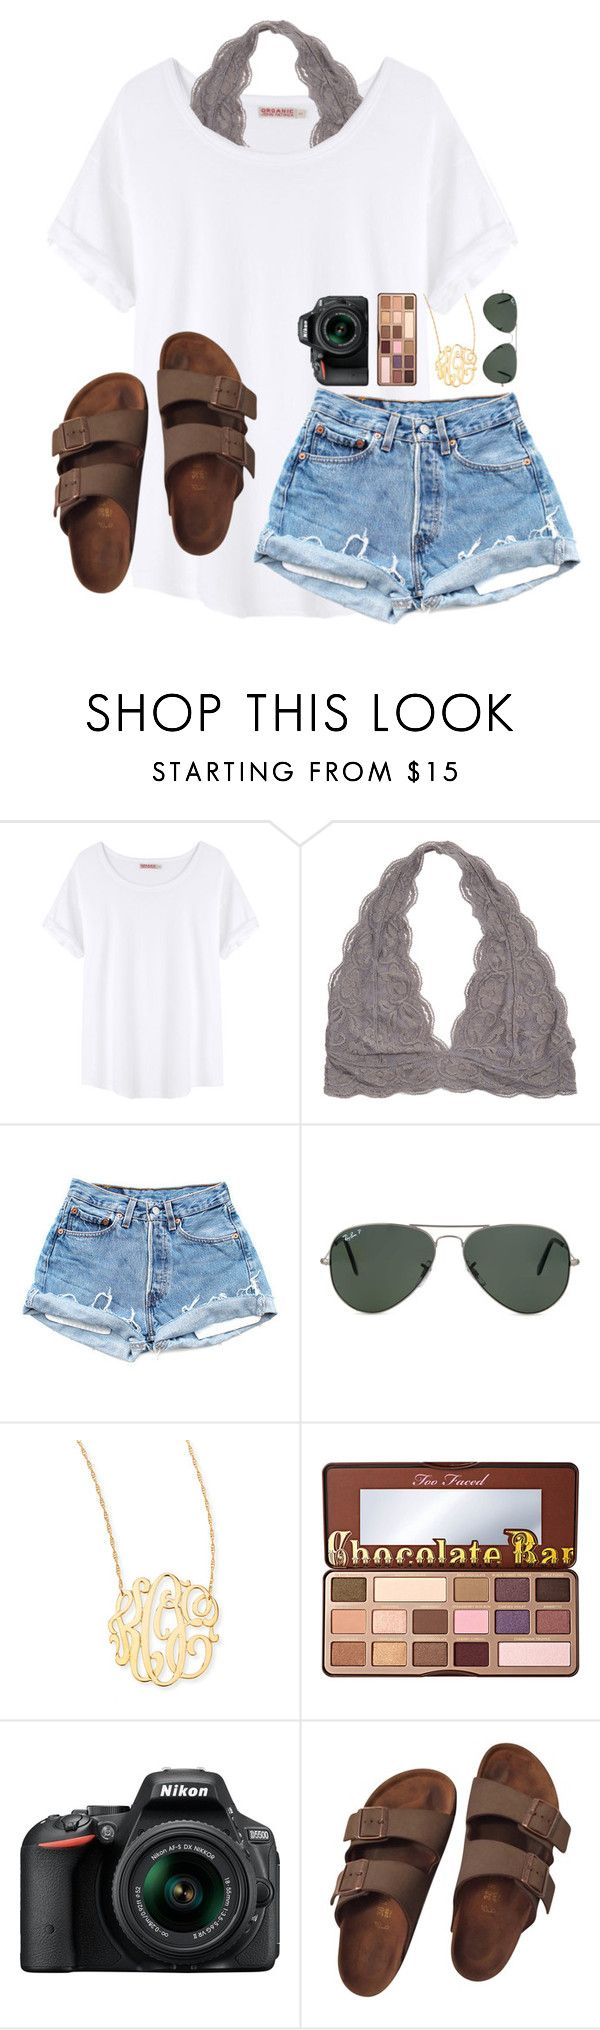 """""""11:55pm, May 10th 2016"""" by preppy-southern-gals ❤ liked on Polyvore featuring Organic by John Patrick, Ray-Ban, Jennifer Zeuner, Too Faced Cosmetics, Nikon and Birkenstock"""